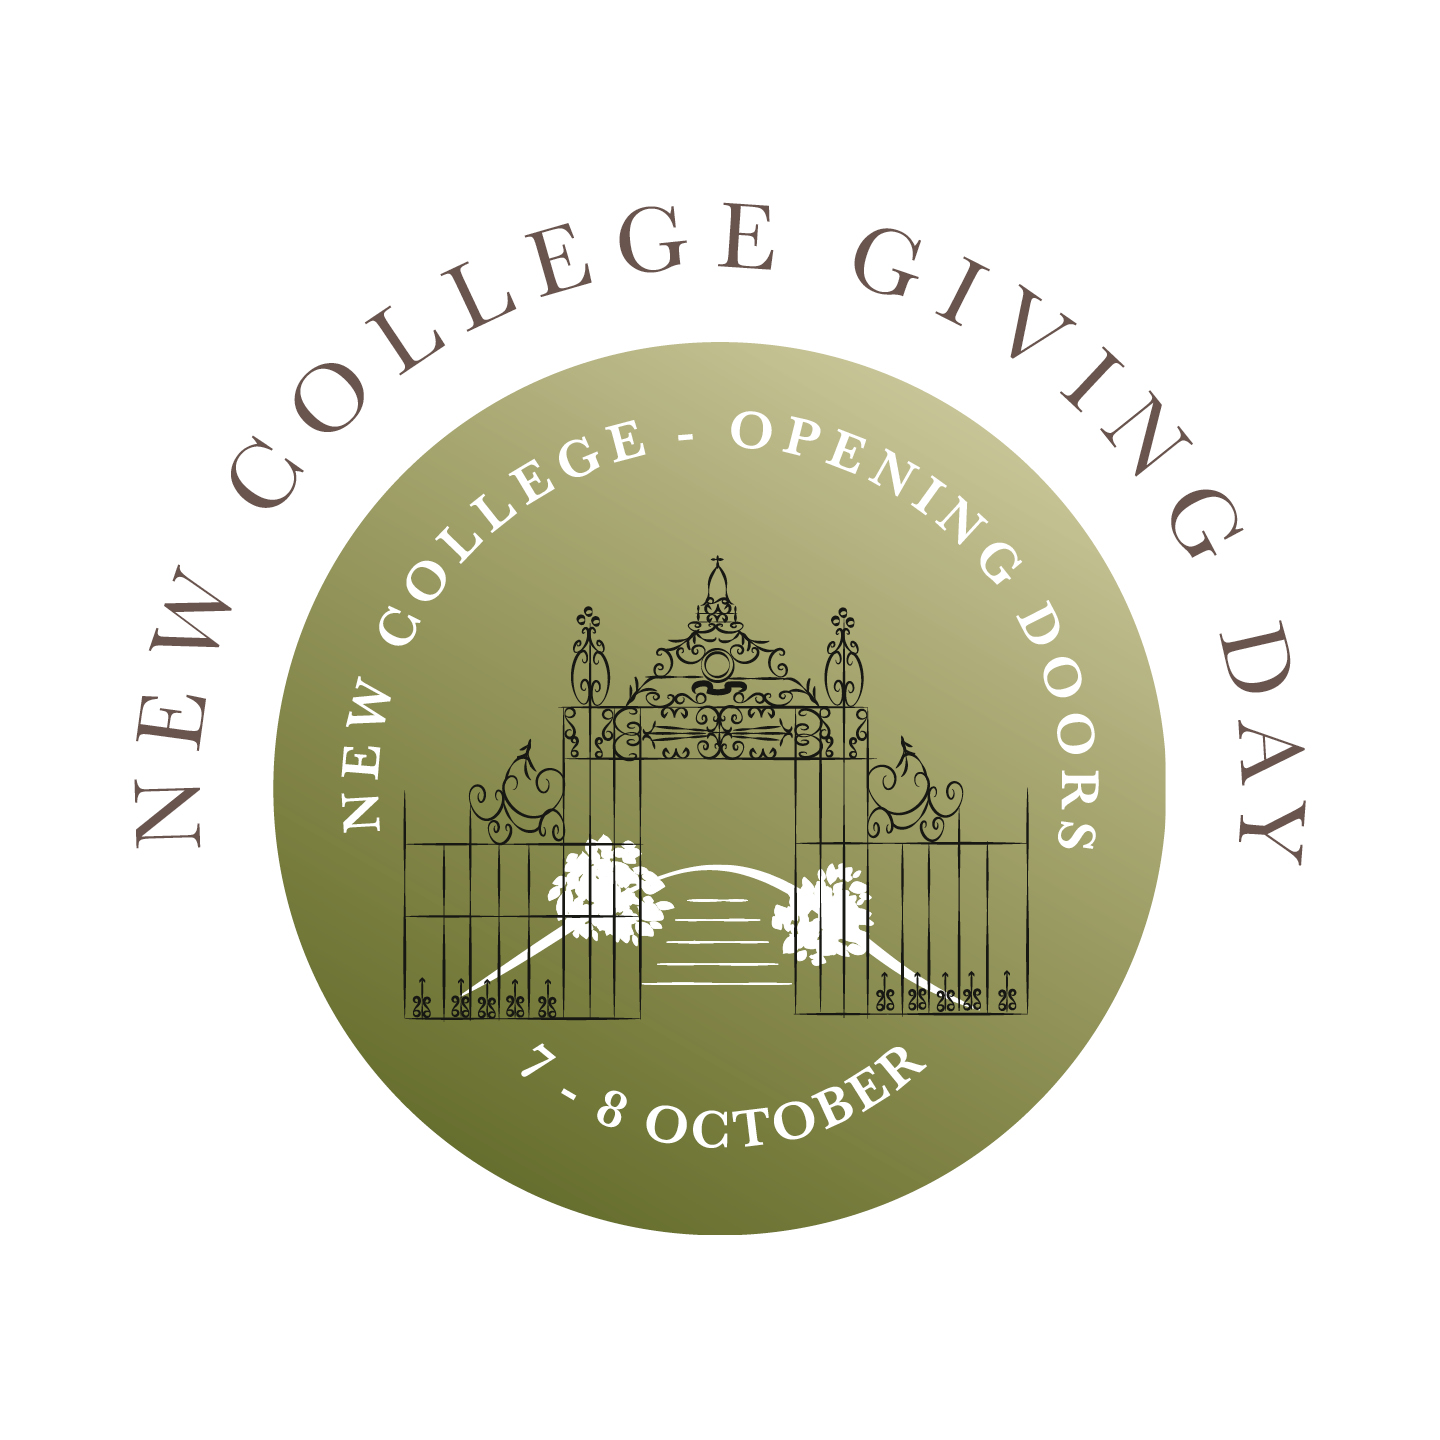 New College Giving Day logo showing iron screen in Garden Quad